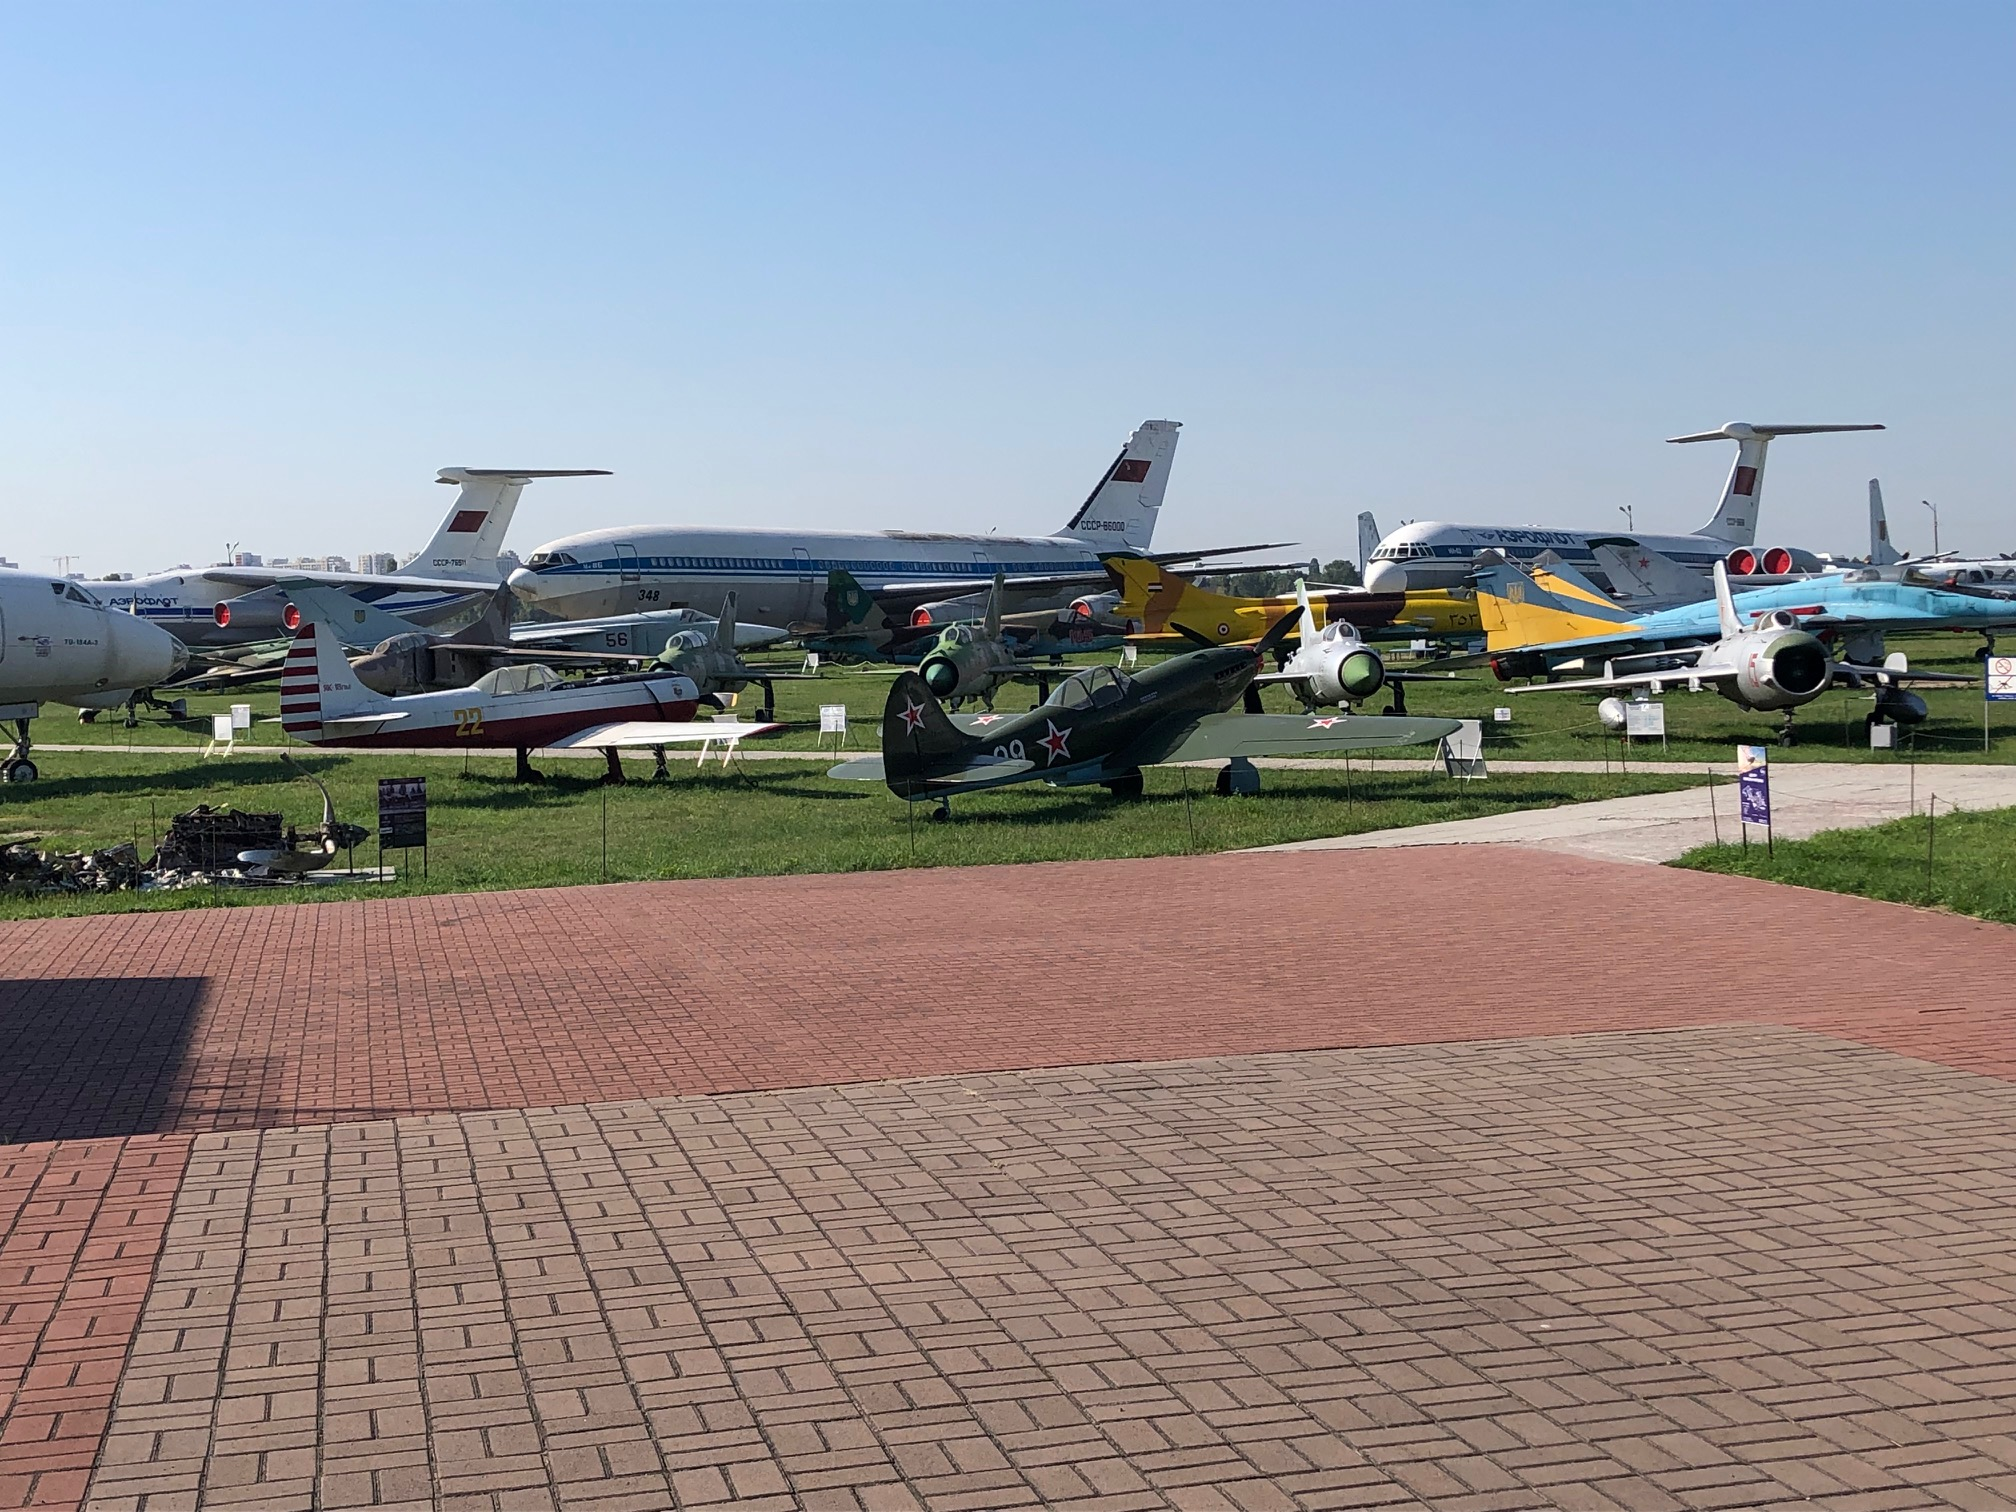 Oleg Antonov State Aviation Museum